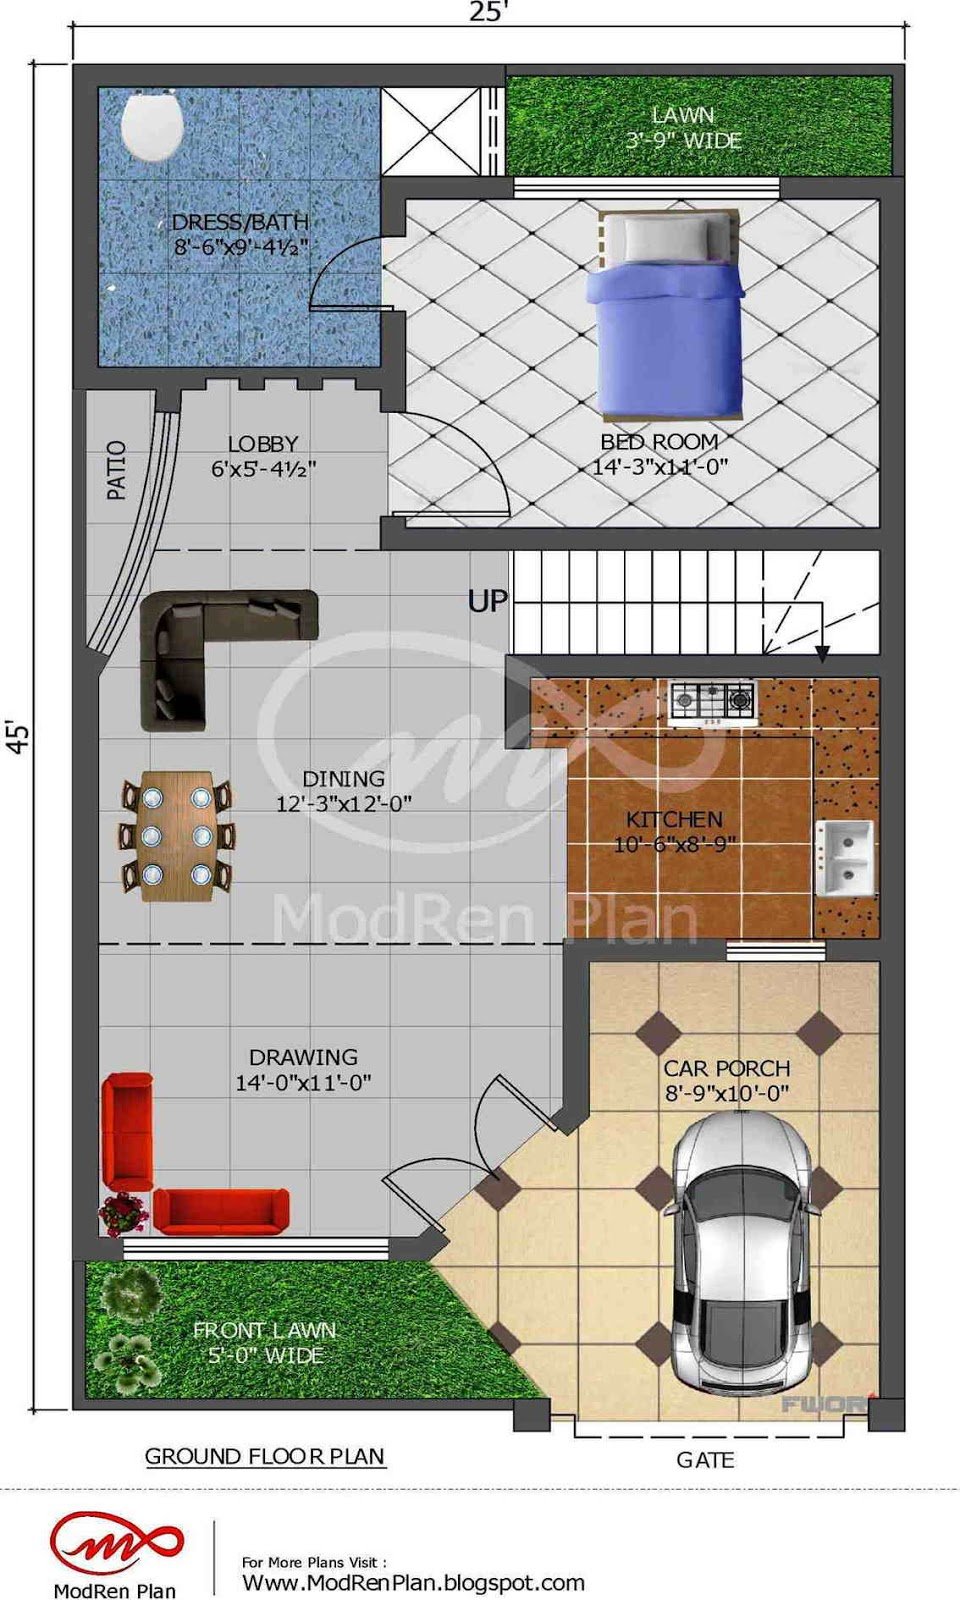 5 marla house plan 1200 sq ft 25x45 feet for House map 3d